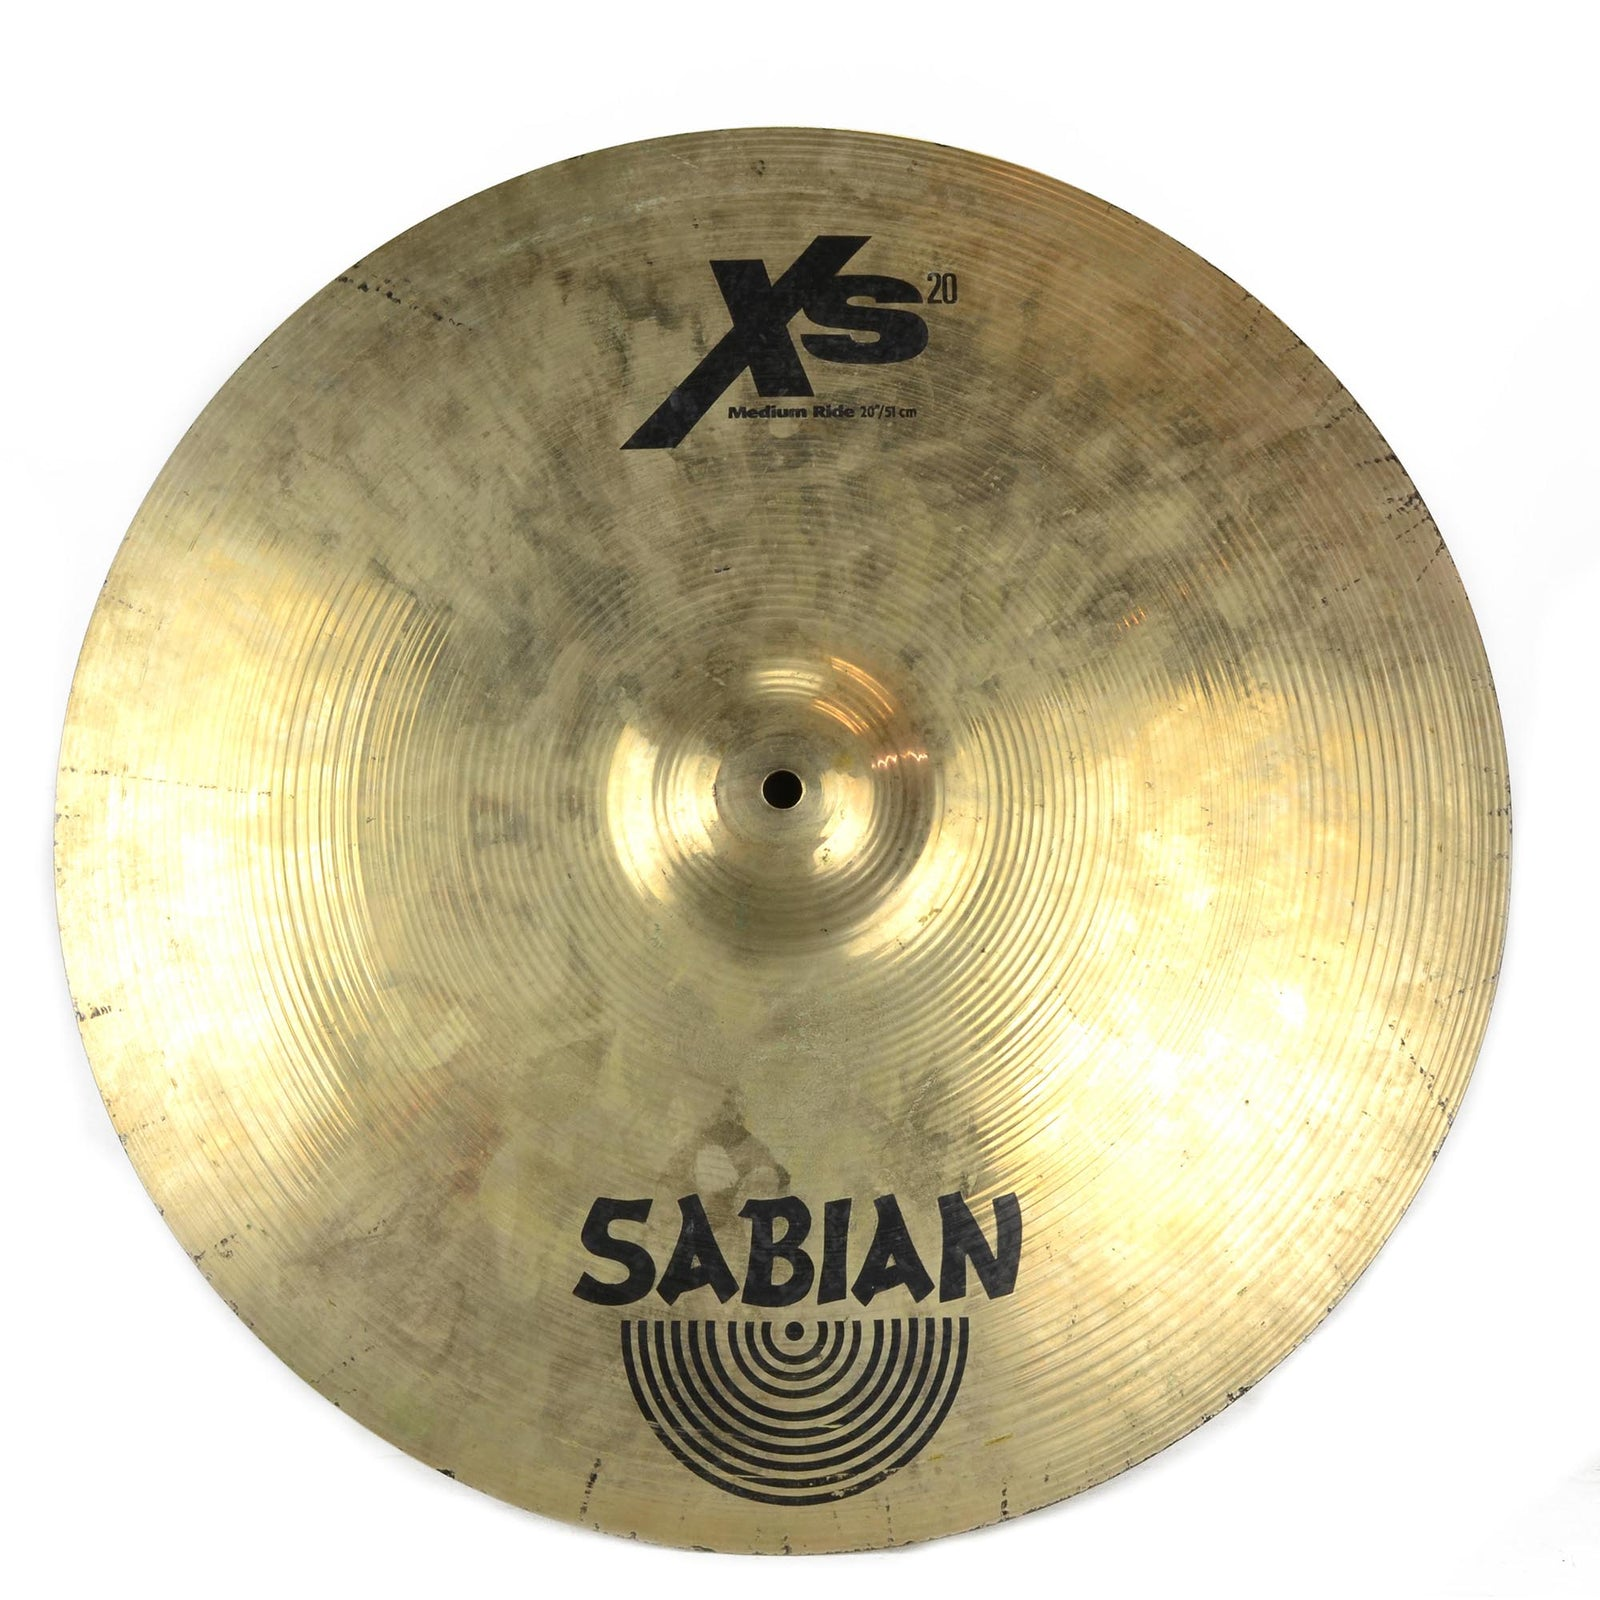 "Sabian XS20 Medium Ride 20"" - Used"